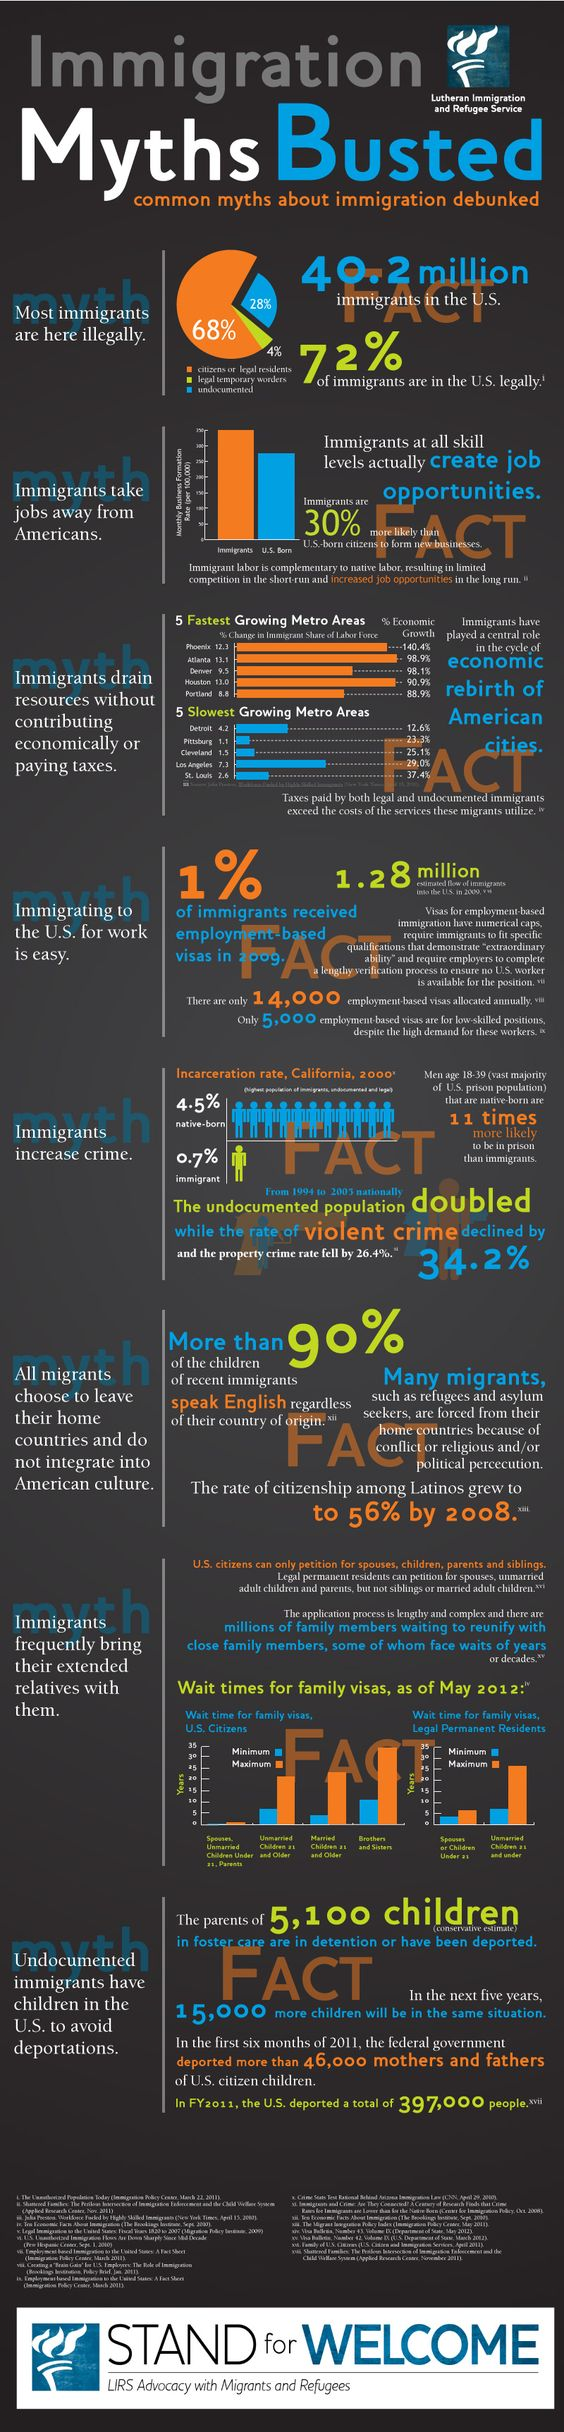 A powerful infographic exposing various myths about immigrantion. Learn more, love more.